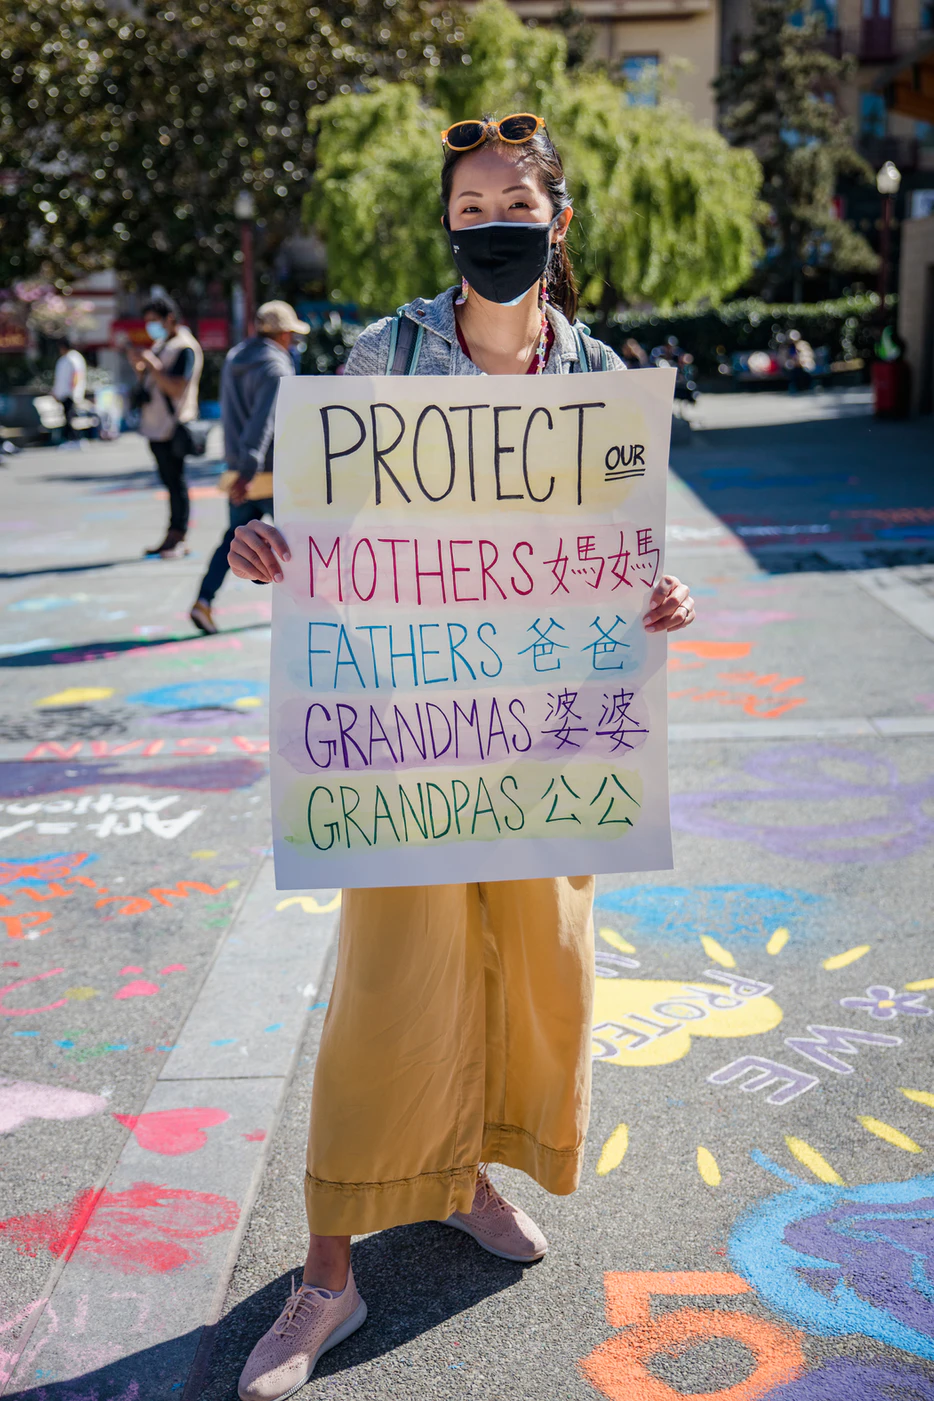 Many of the hate crimes and bias incidents have been carried out against elderly members of the Asian and Asian-American communities. https://unsplash.com/photos/Z7XjV_K_AZo Jason Leung